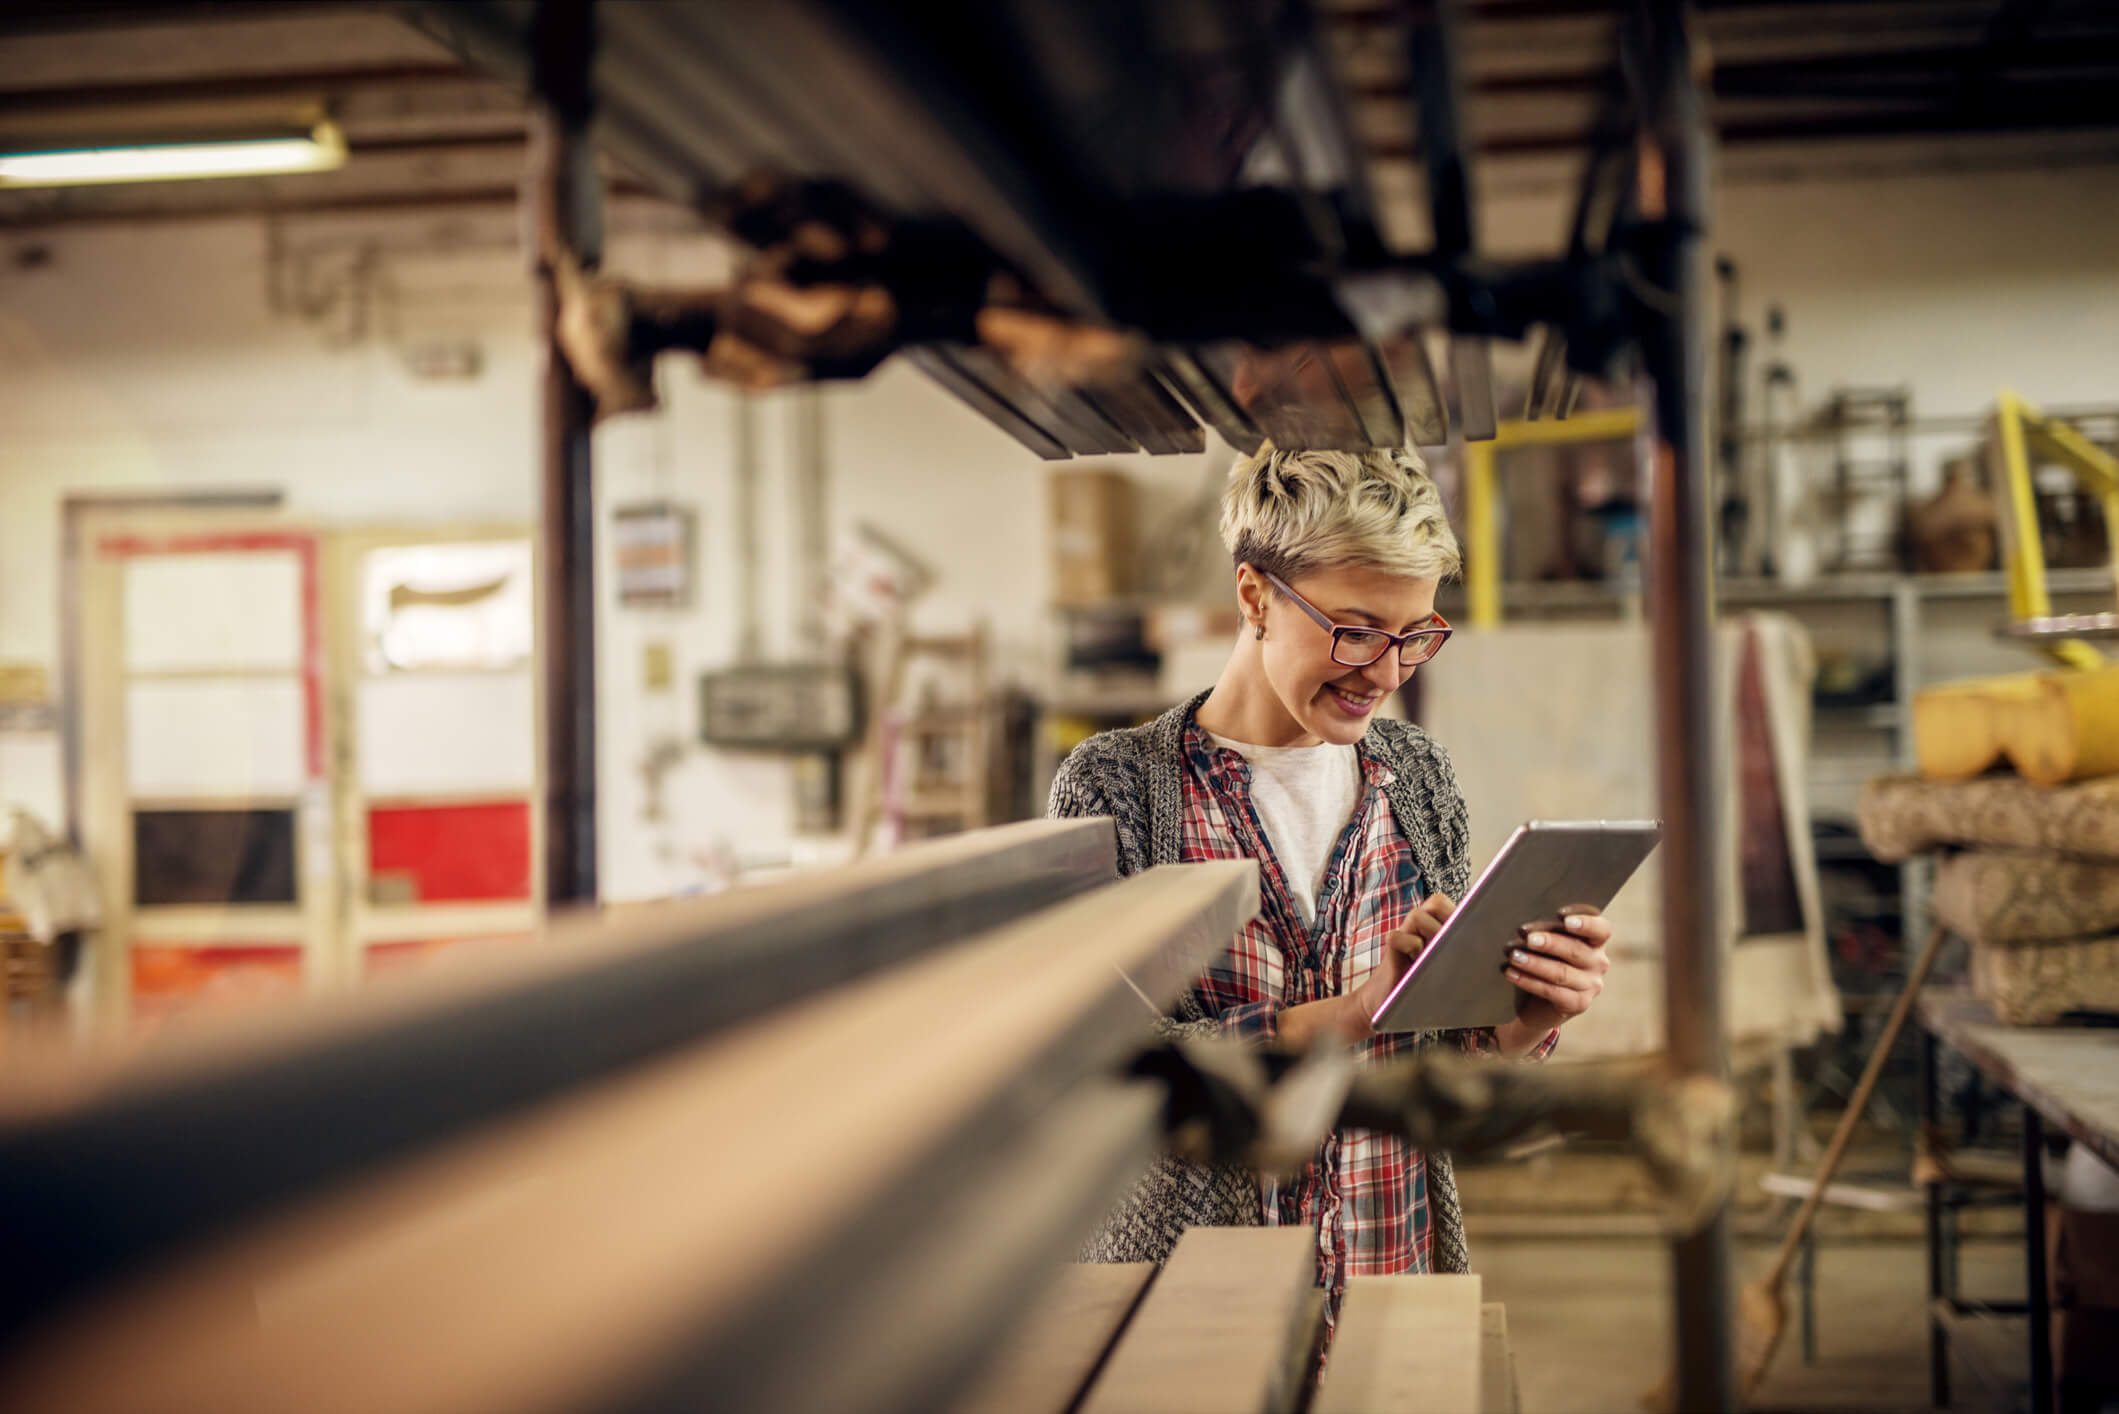 How workforce management software can digitally transform your business